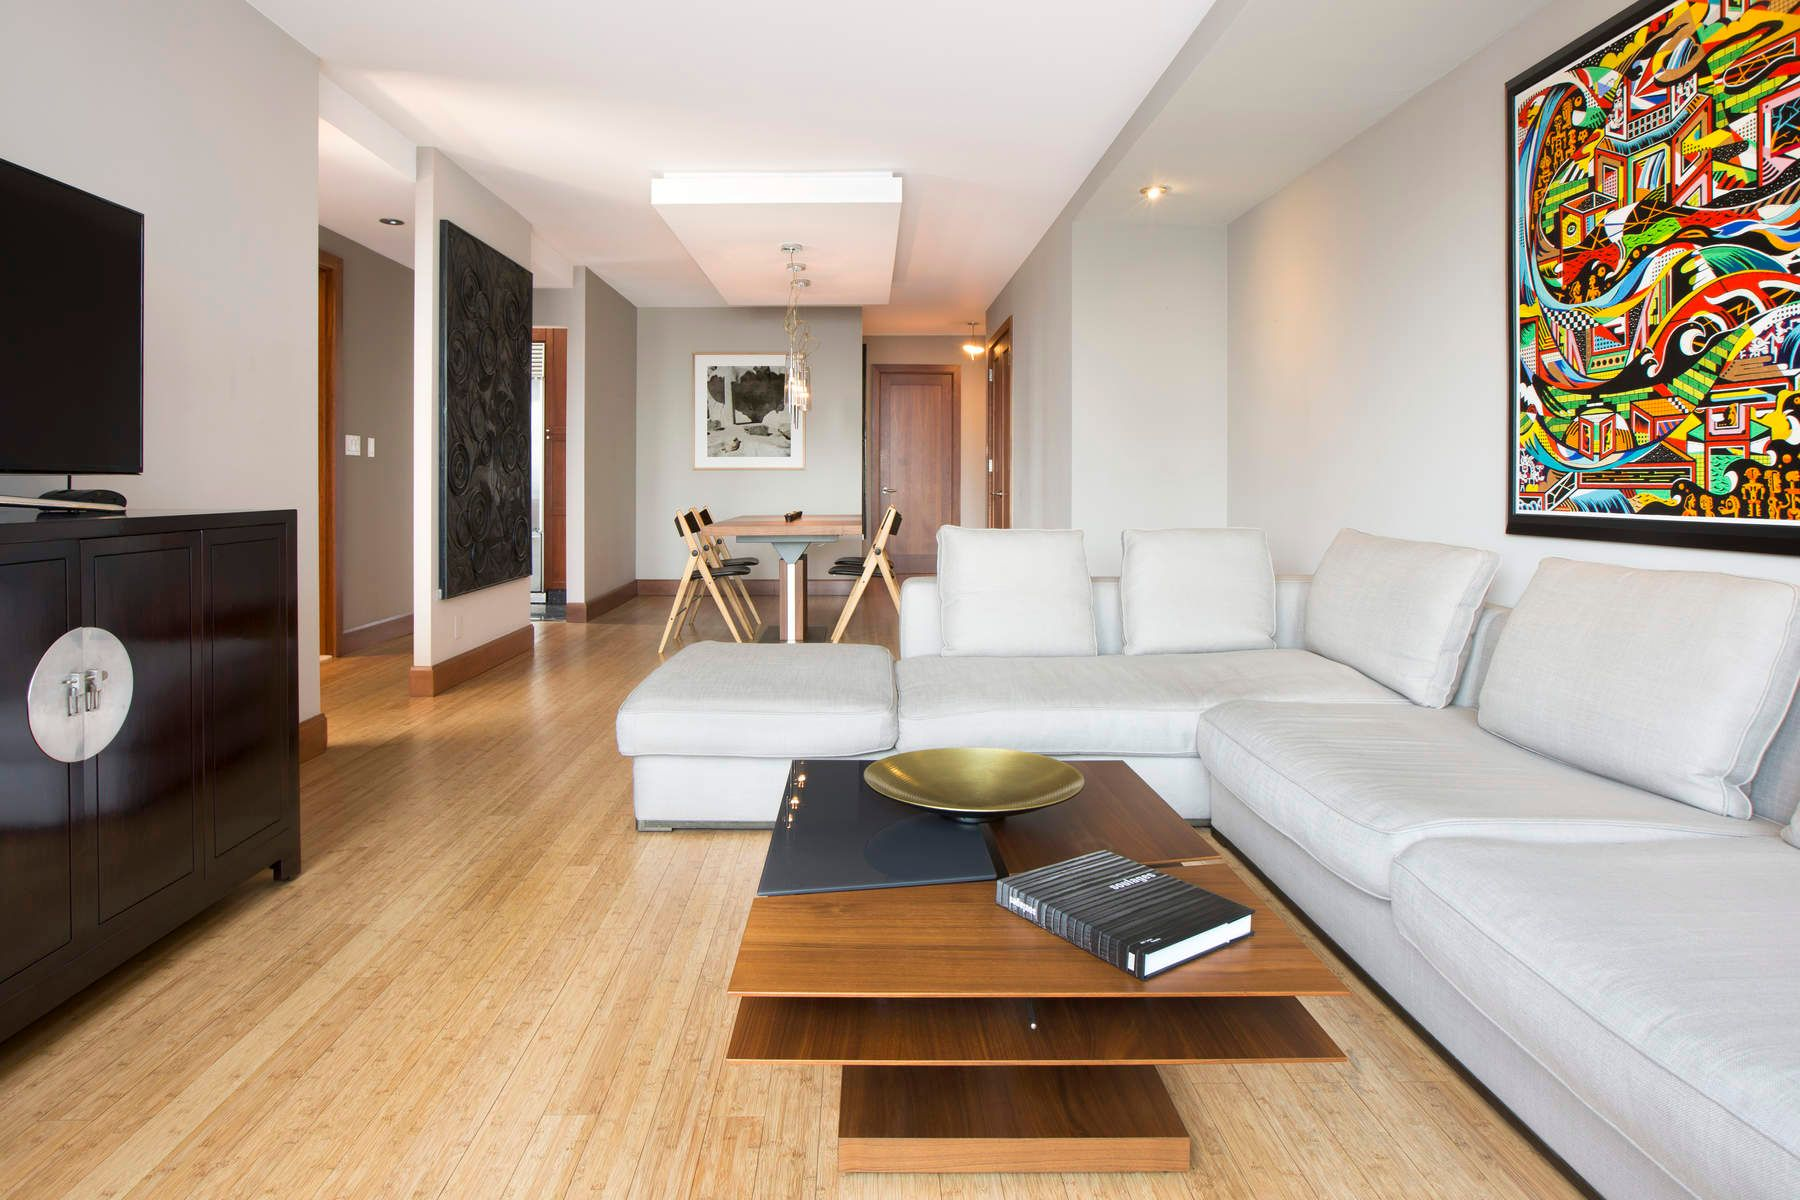 Martine Capdevielle_Luxury Real Estate NYC_117 EAST 57TH STREET APT 34h15.jpg